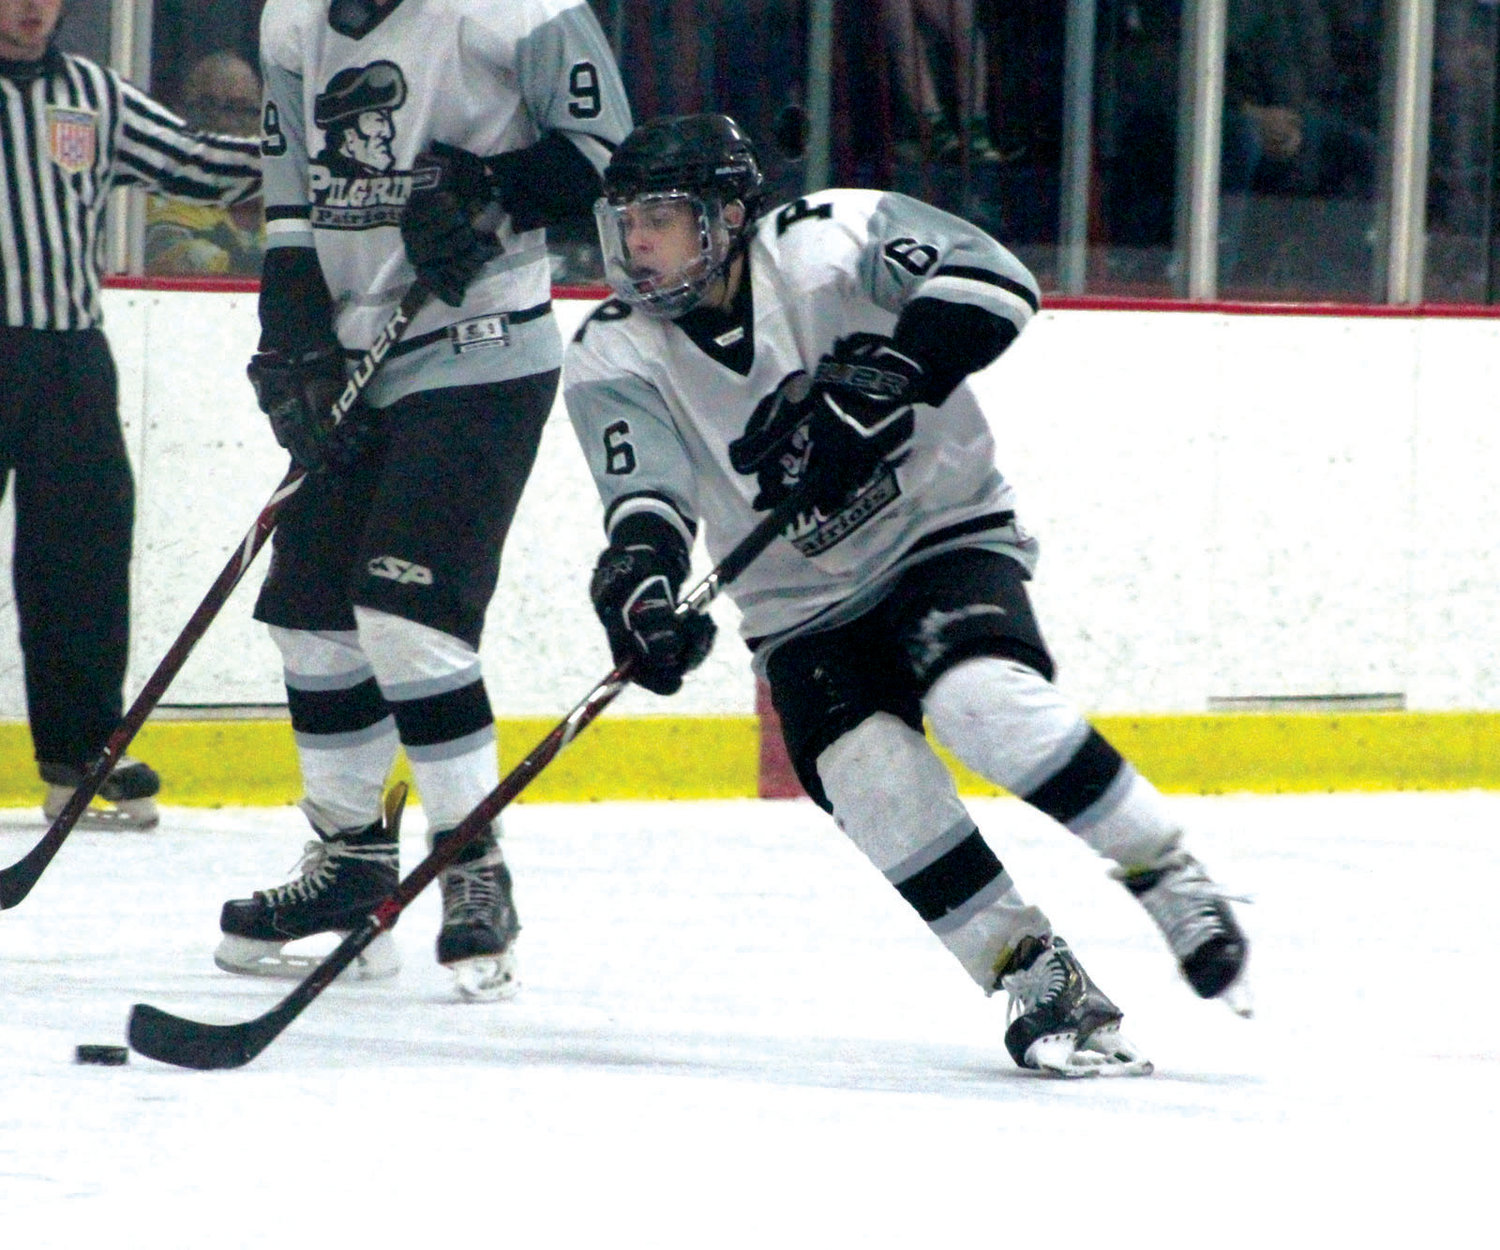 FINALS BOUND: Pilgrim's Collin Driscoll carries the puck up the ice in the Division III Semifinals against Mt. Hope at the Thayer Arena on Tuesday evening.